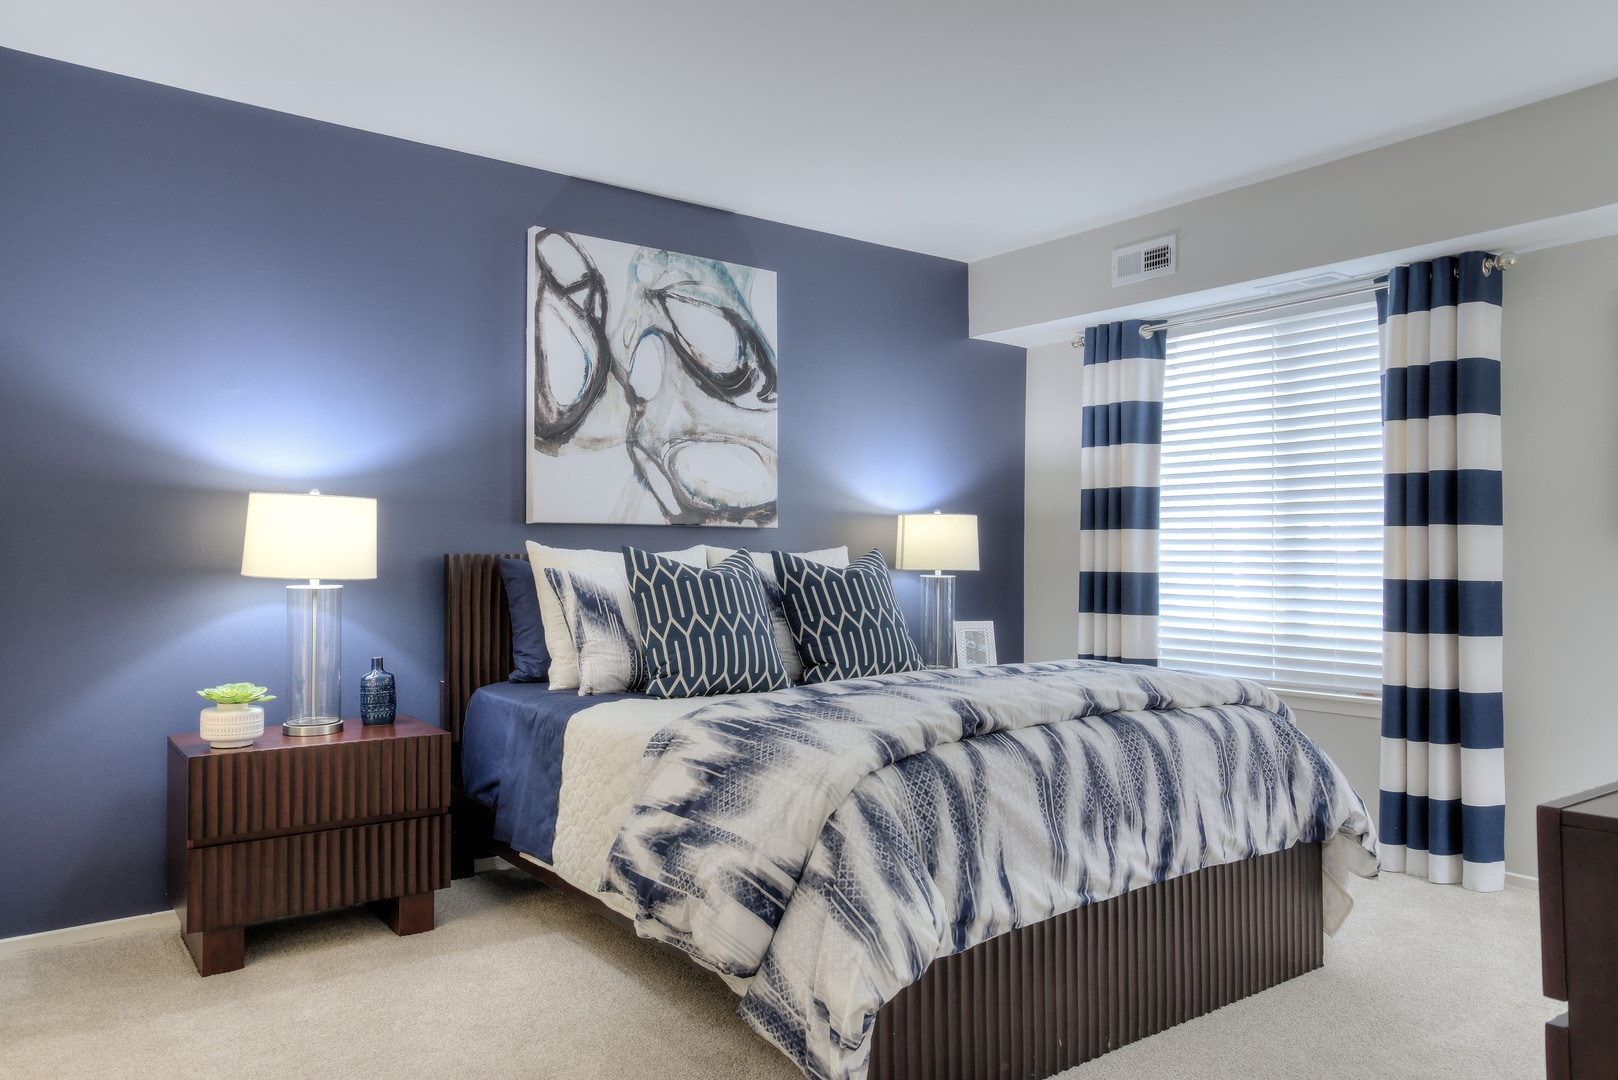 Orion NorthStar | Newly Updated Ann Arbor Luxury Apartments